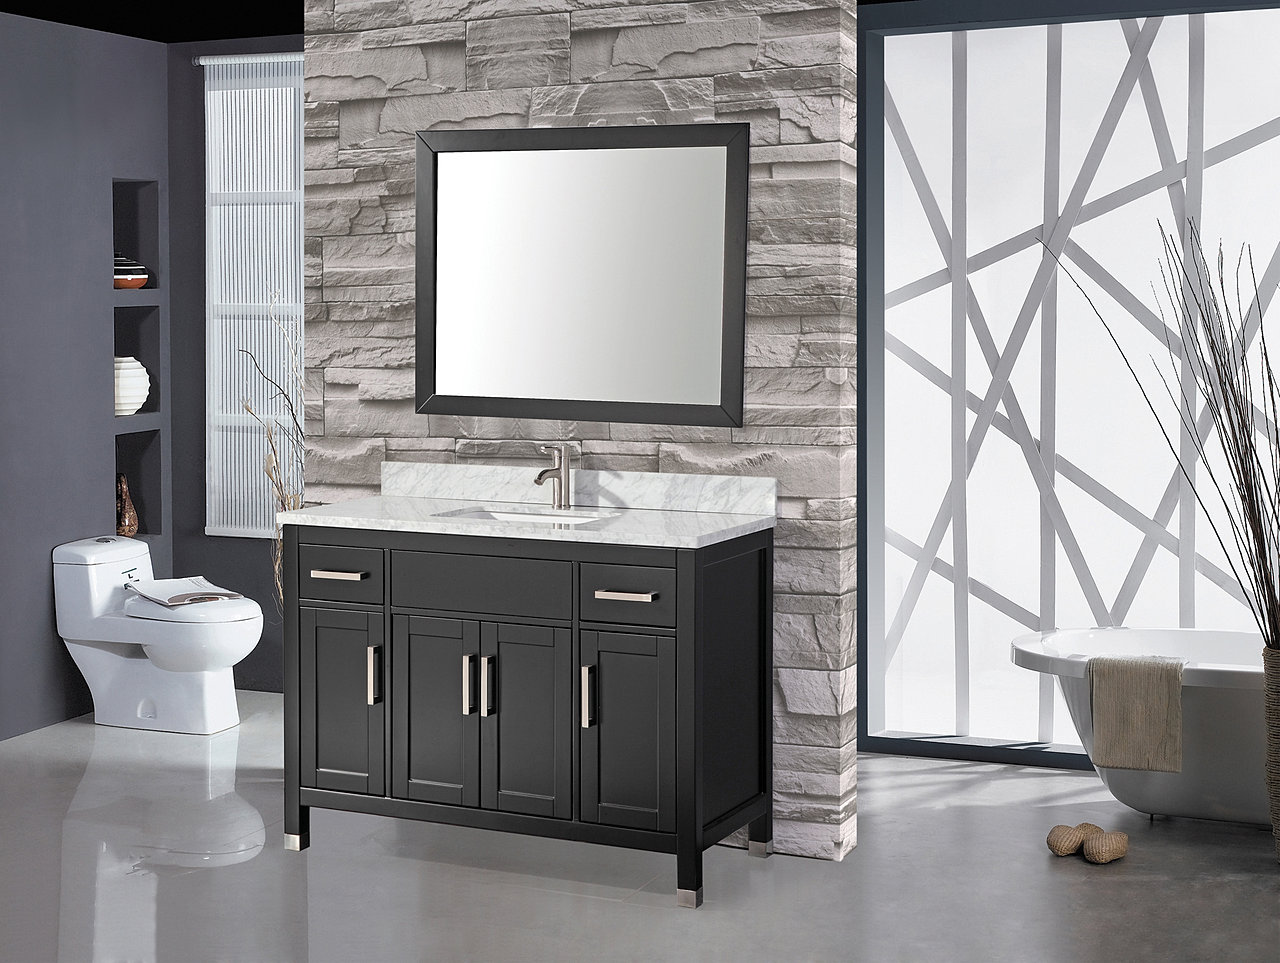 Bathroom vanities ft lauderdale - The Joshua Tree Bathroom Vanities Ft Lauderdale Fl 36 Or 48